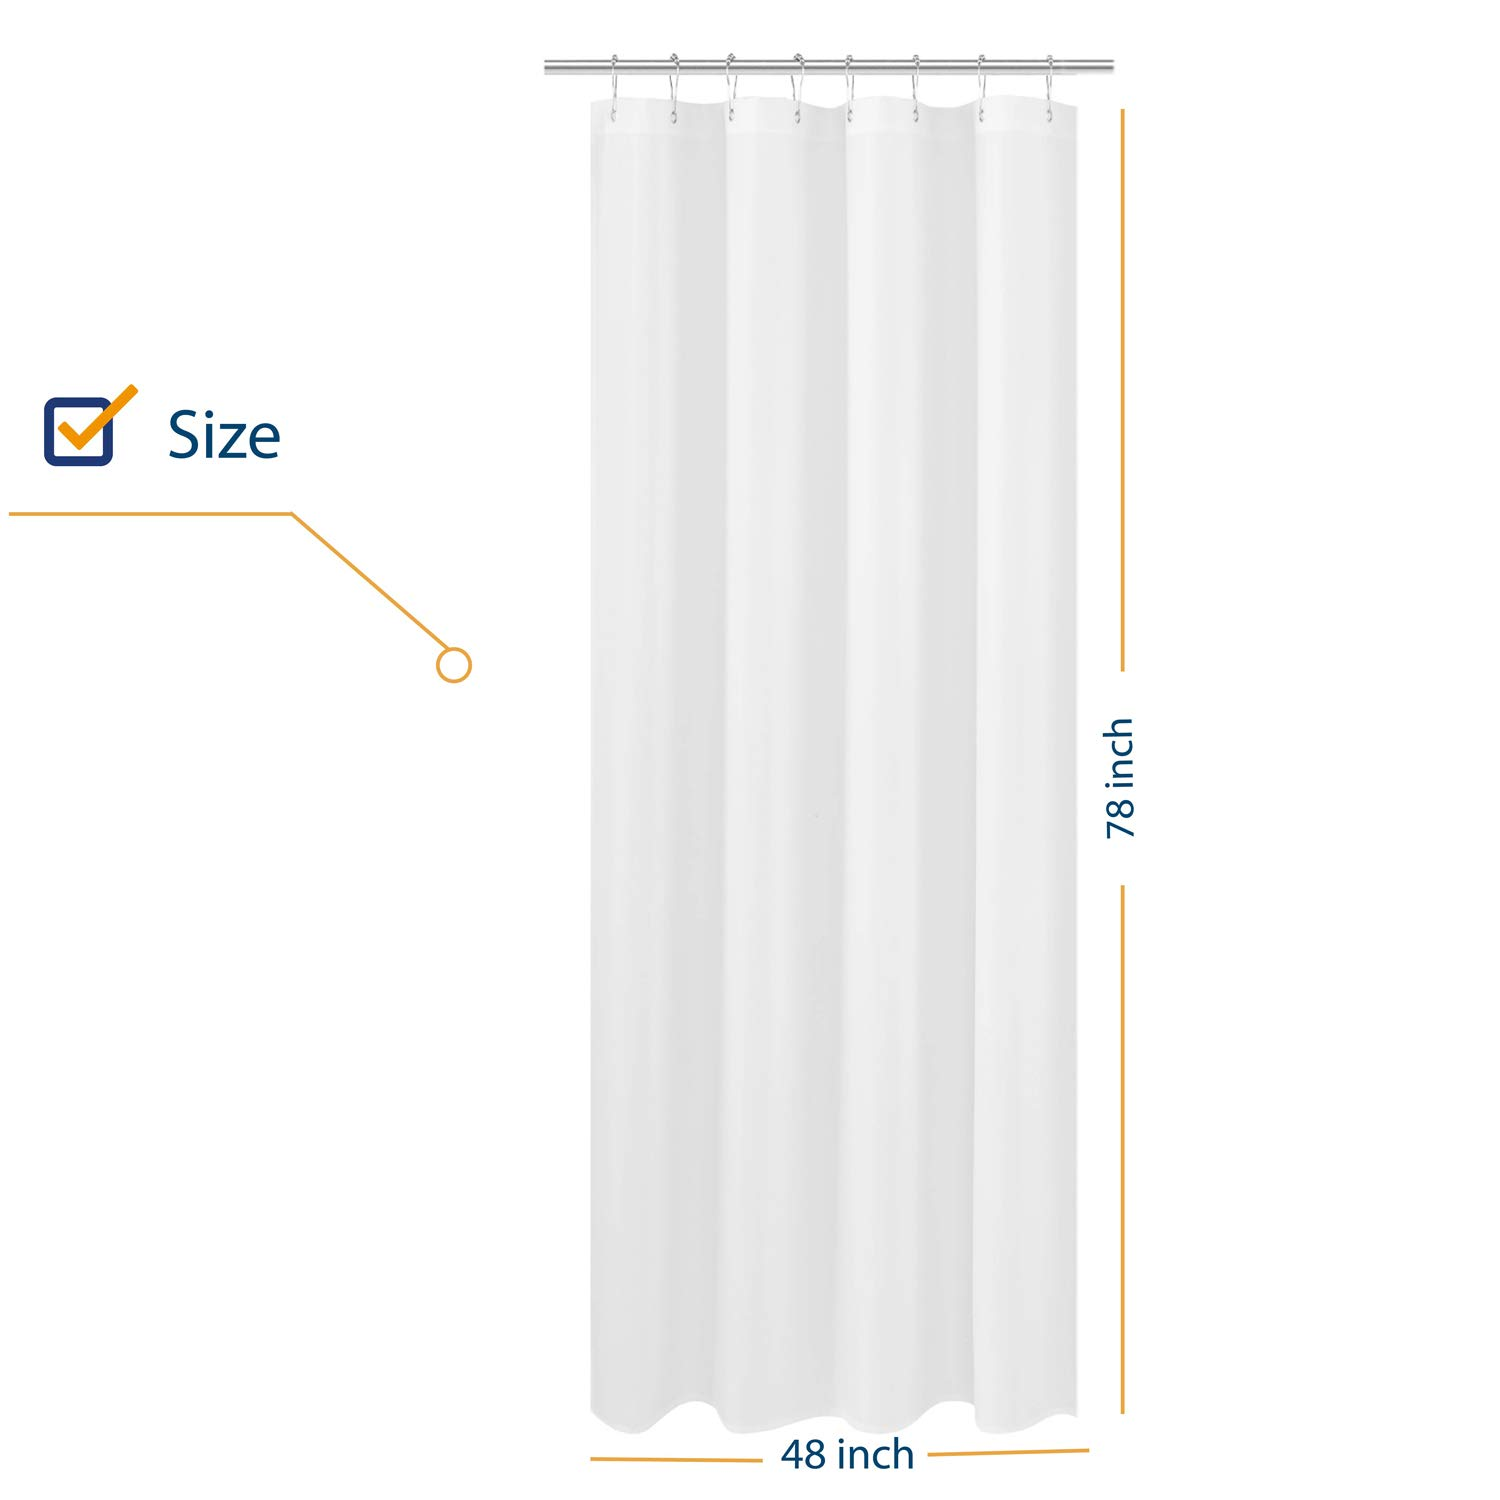 n y home fabric shower curtain liner long stall size 48 x 78 inches hotel quality washable water repellent white bathroom curtains with grommets